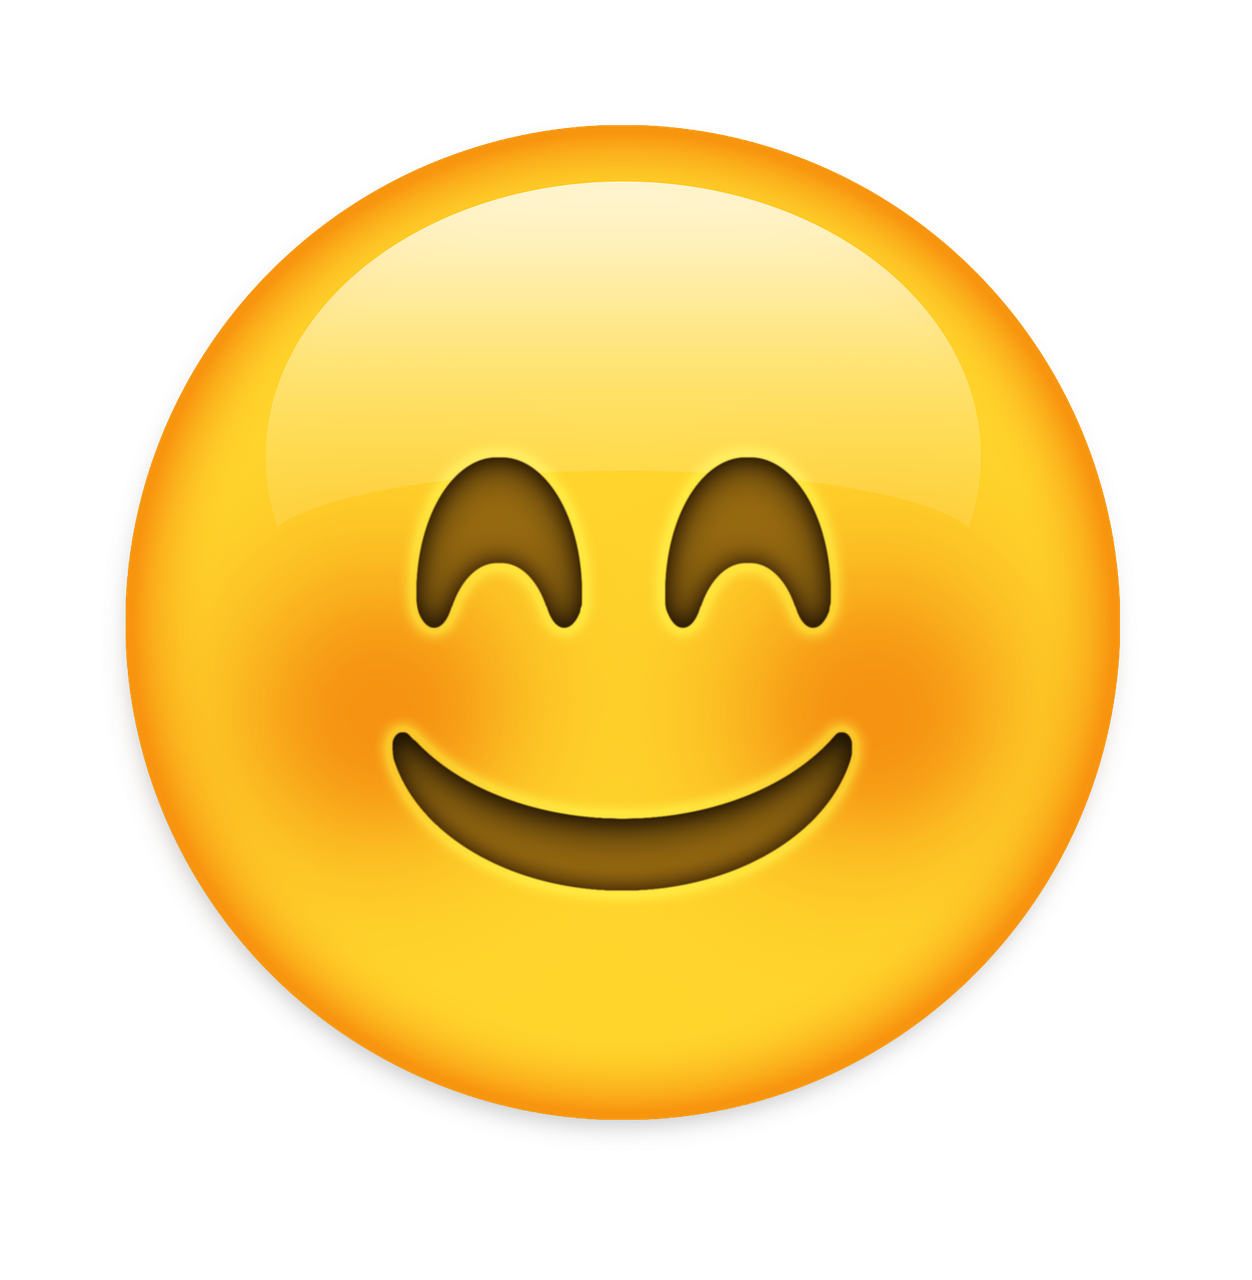 emoticon, smile, emoji